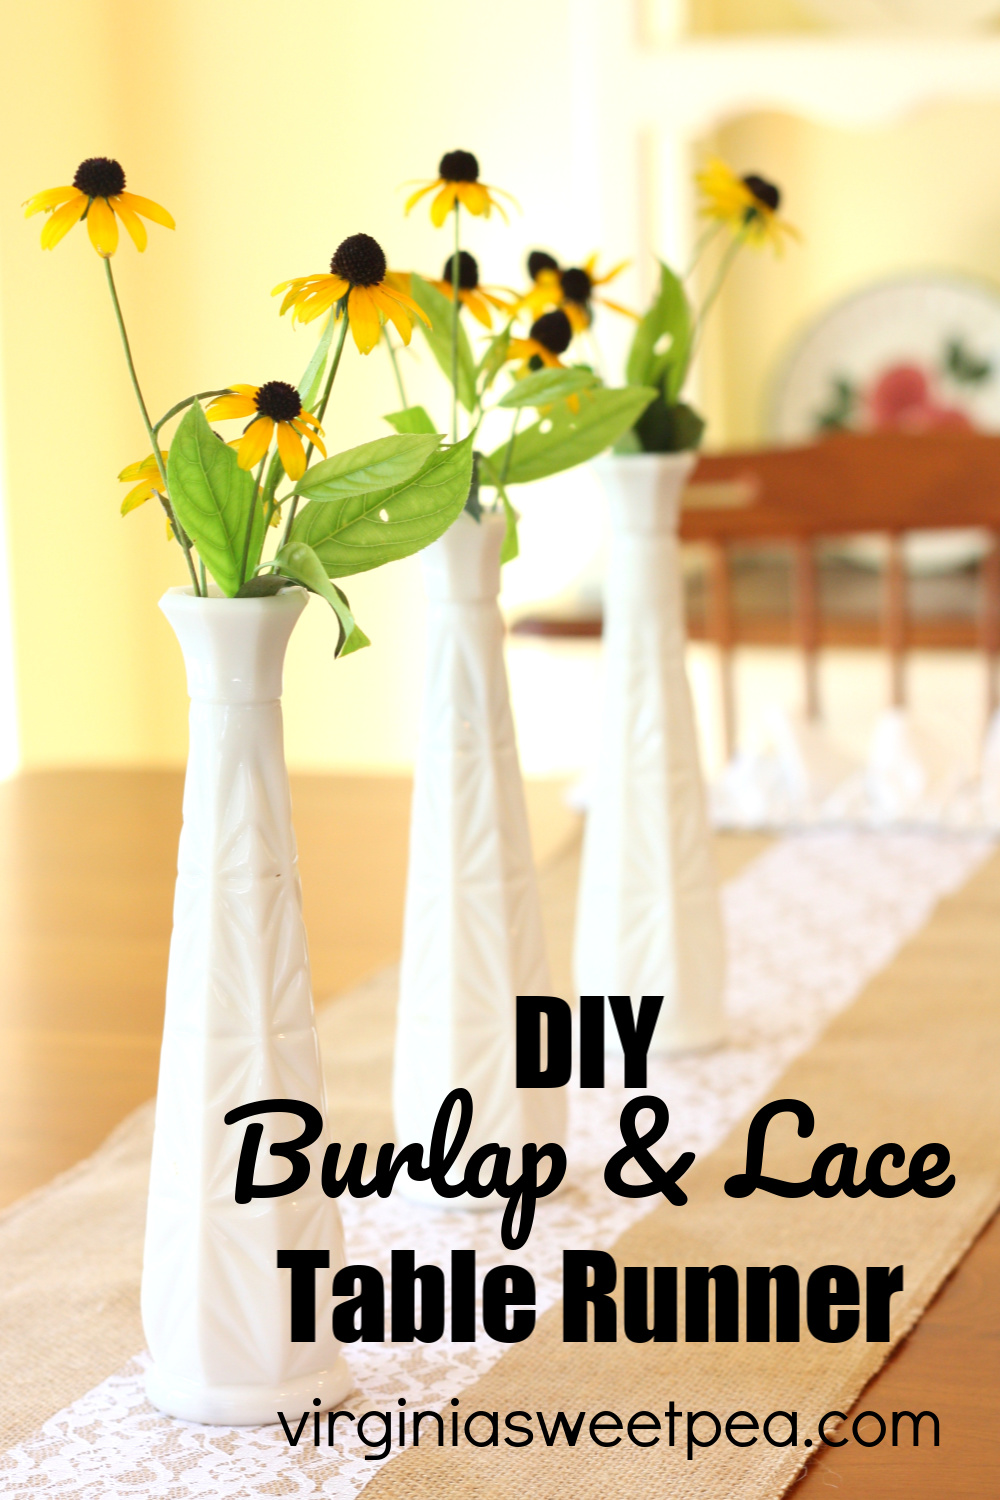 DIY Burlap and Lace Table Runner - Learn how to make a burlap and Lace table runner with a ruffled edge. #burlaptablerunner #burlap #burlapandlace via @spaula